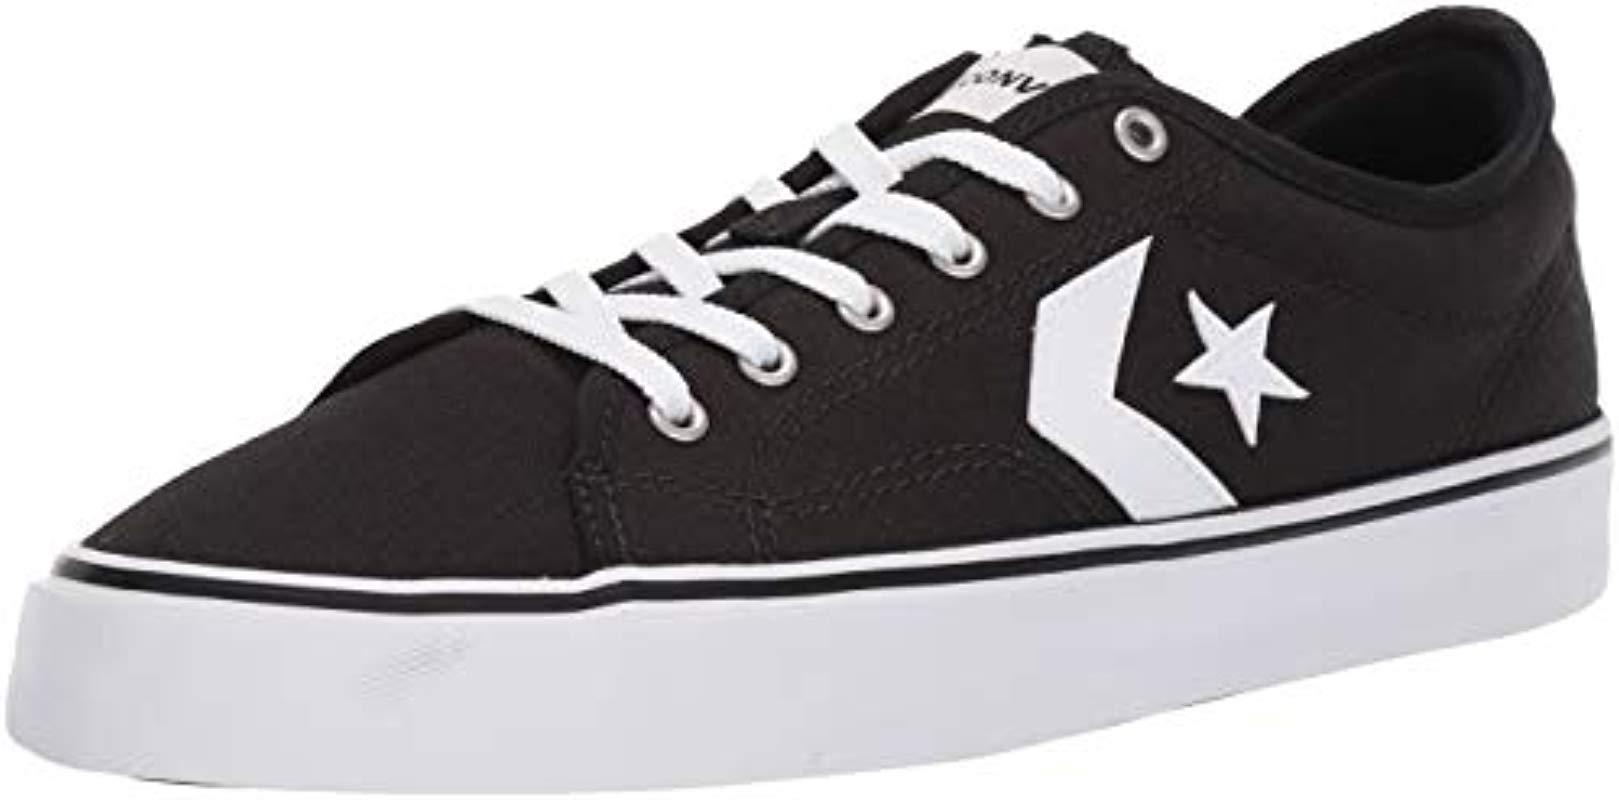 Lyst - Converse Unisex Star Replay Low Top Sneaker in White for Men 2f779c291